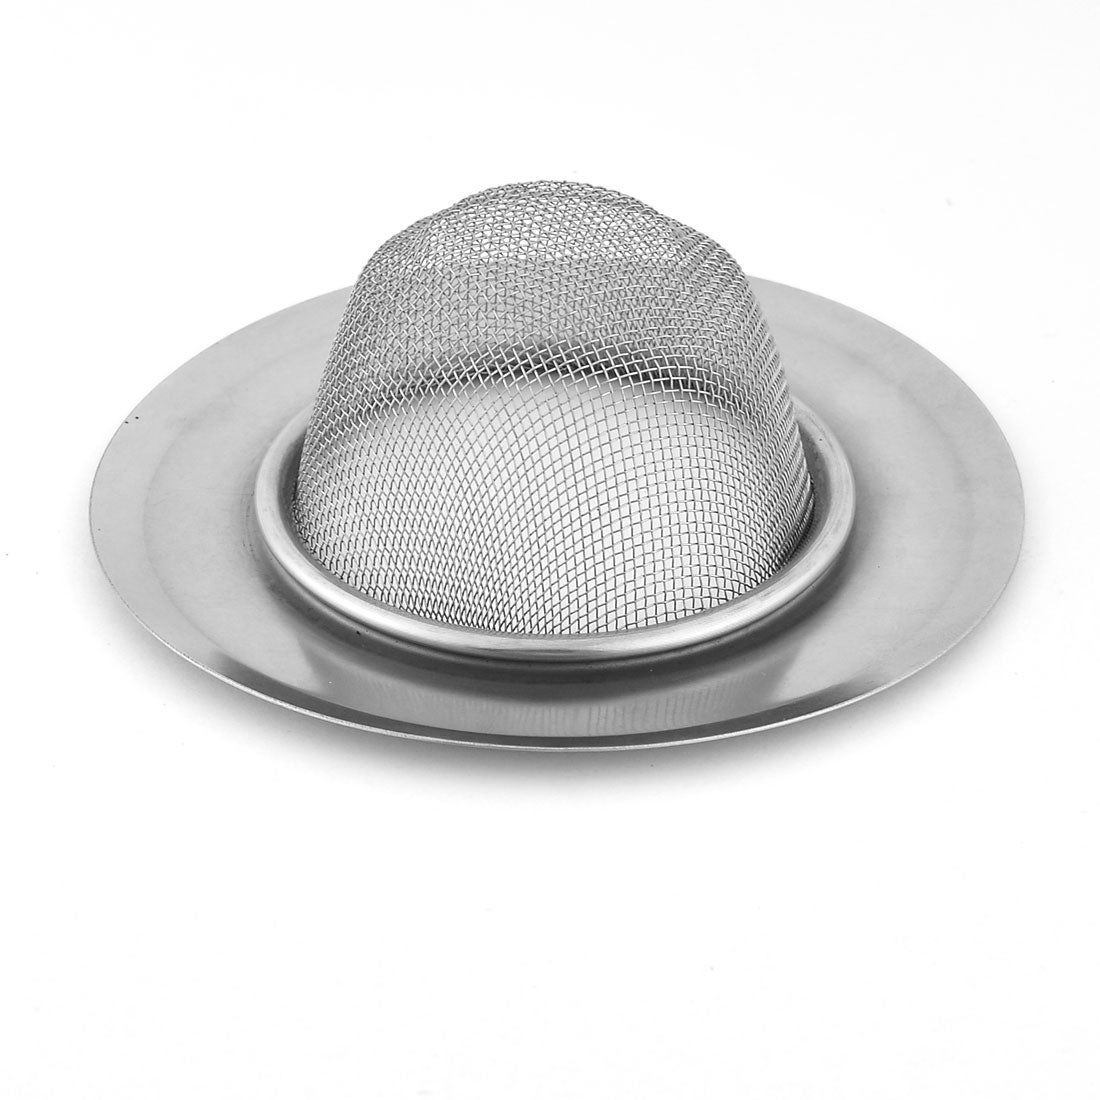 1b53d9beb48 Shop Household Mesh Basket Metal Round Sanitary Sink Drain Strainer Silver  Tone - On Sale - Free Shipping On Orders Over  45 - Overstock - 17587790